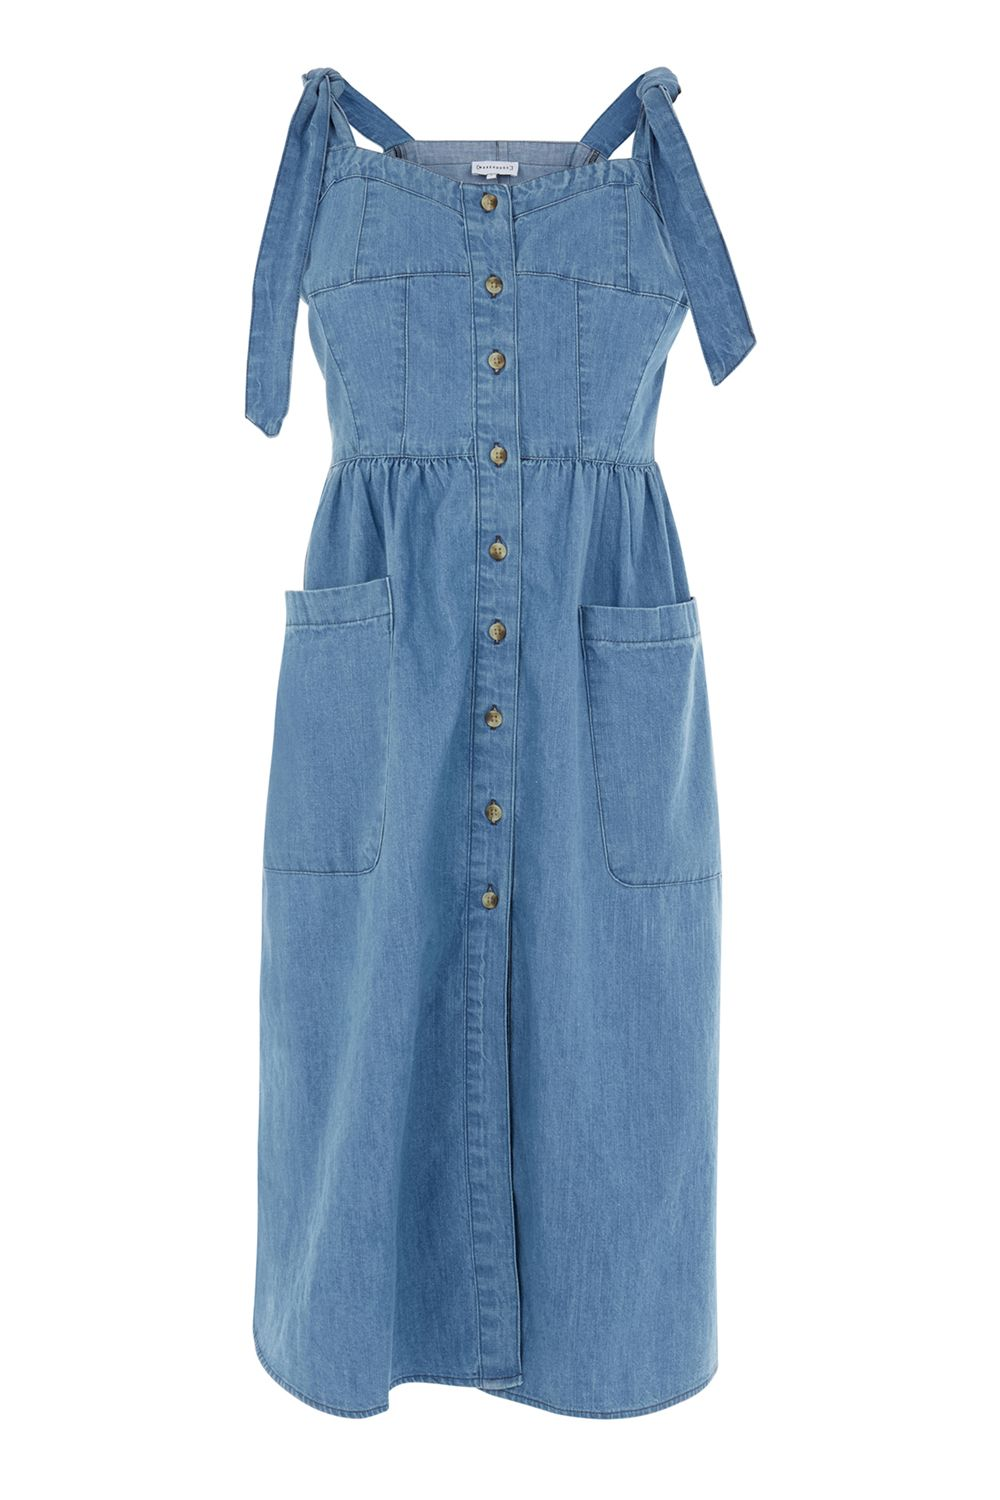 Warehouse Tie Strap Pocket Dress, Denim